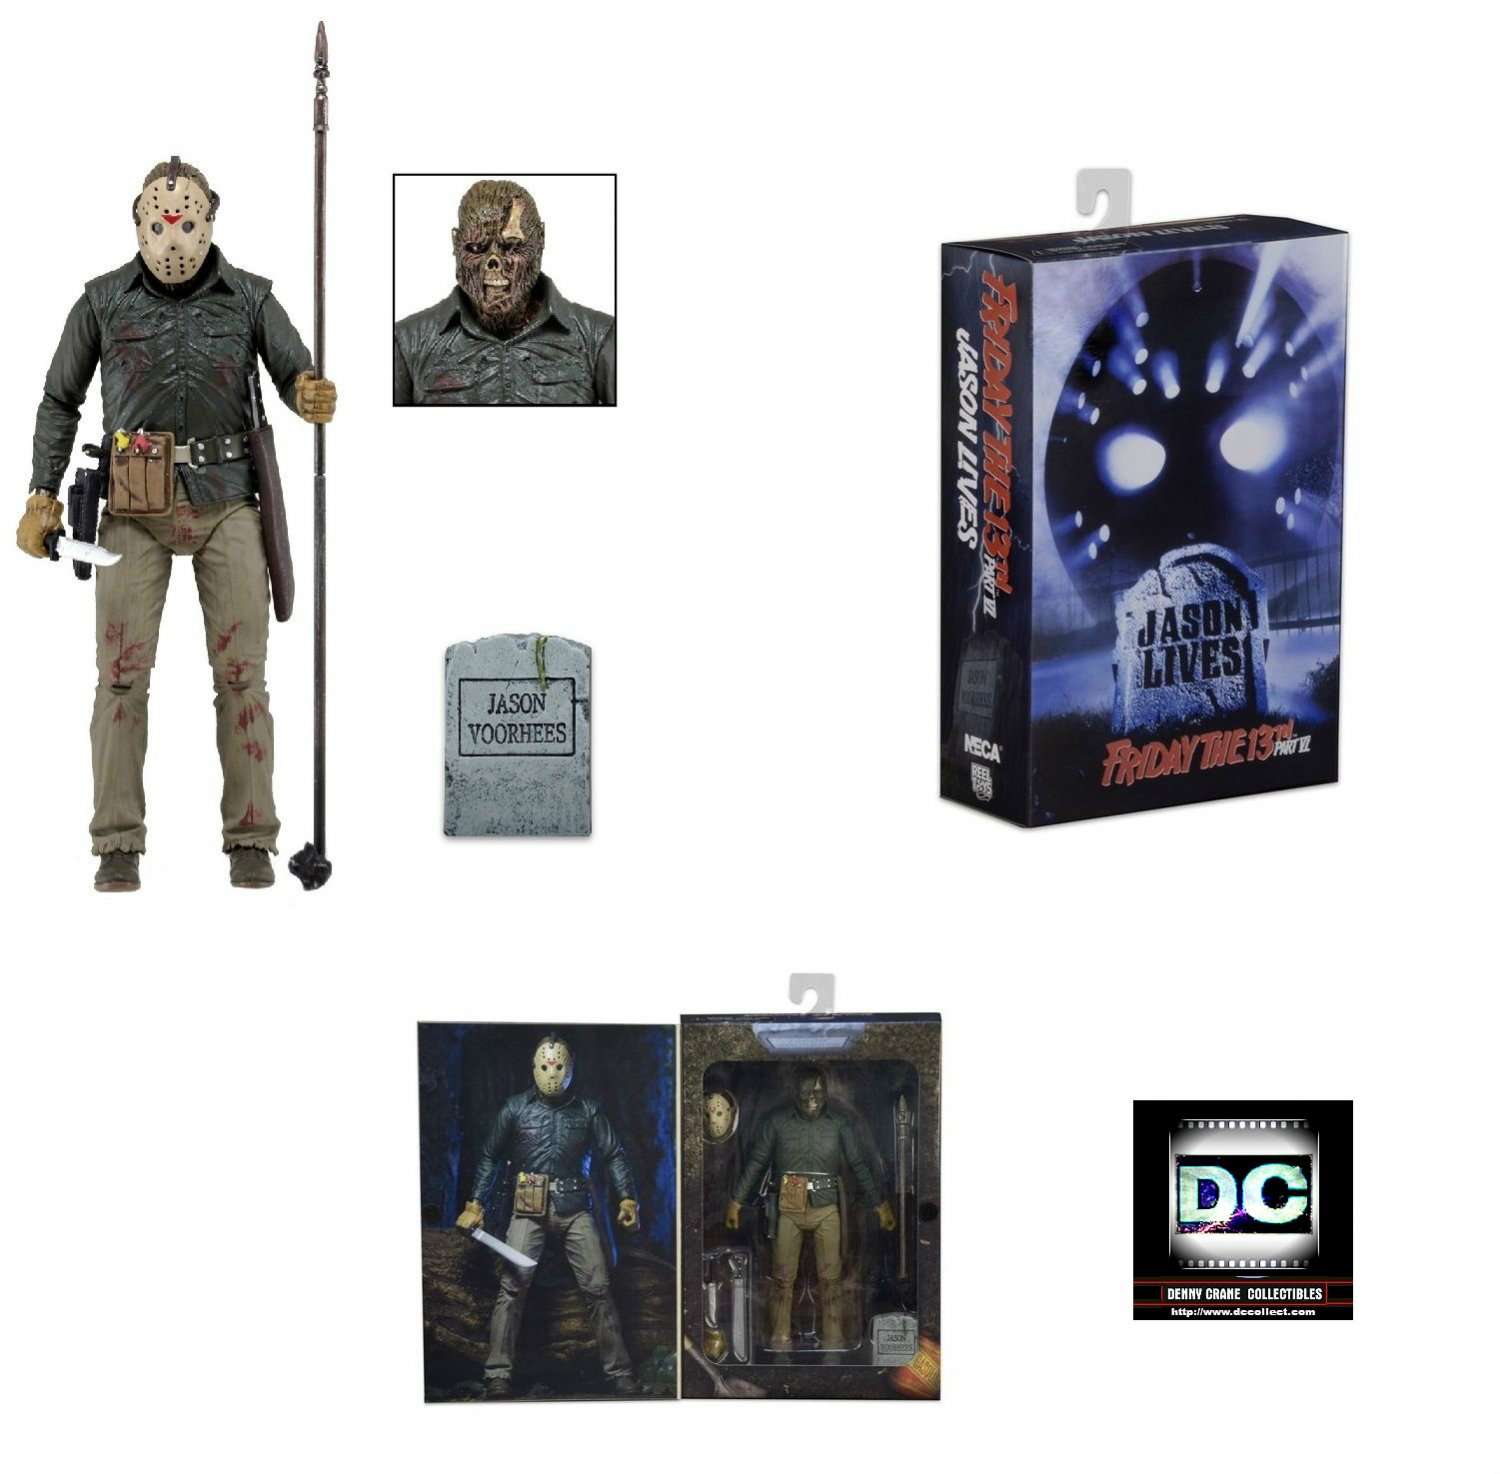 Neca Friday the 13th Ultimate Jason Voorhees Pt. 6 30th 7-In 18cm Action Figure 2015 Reel Toys 39714